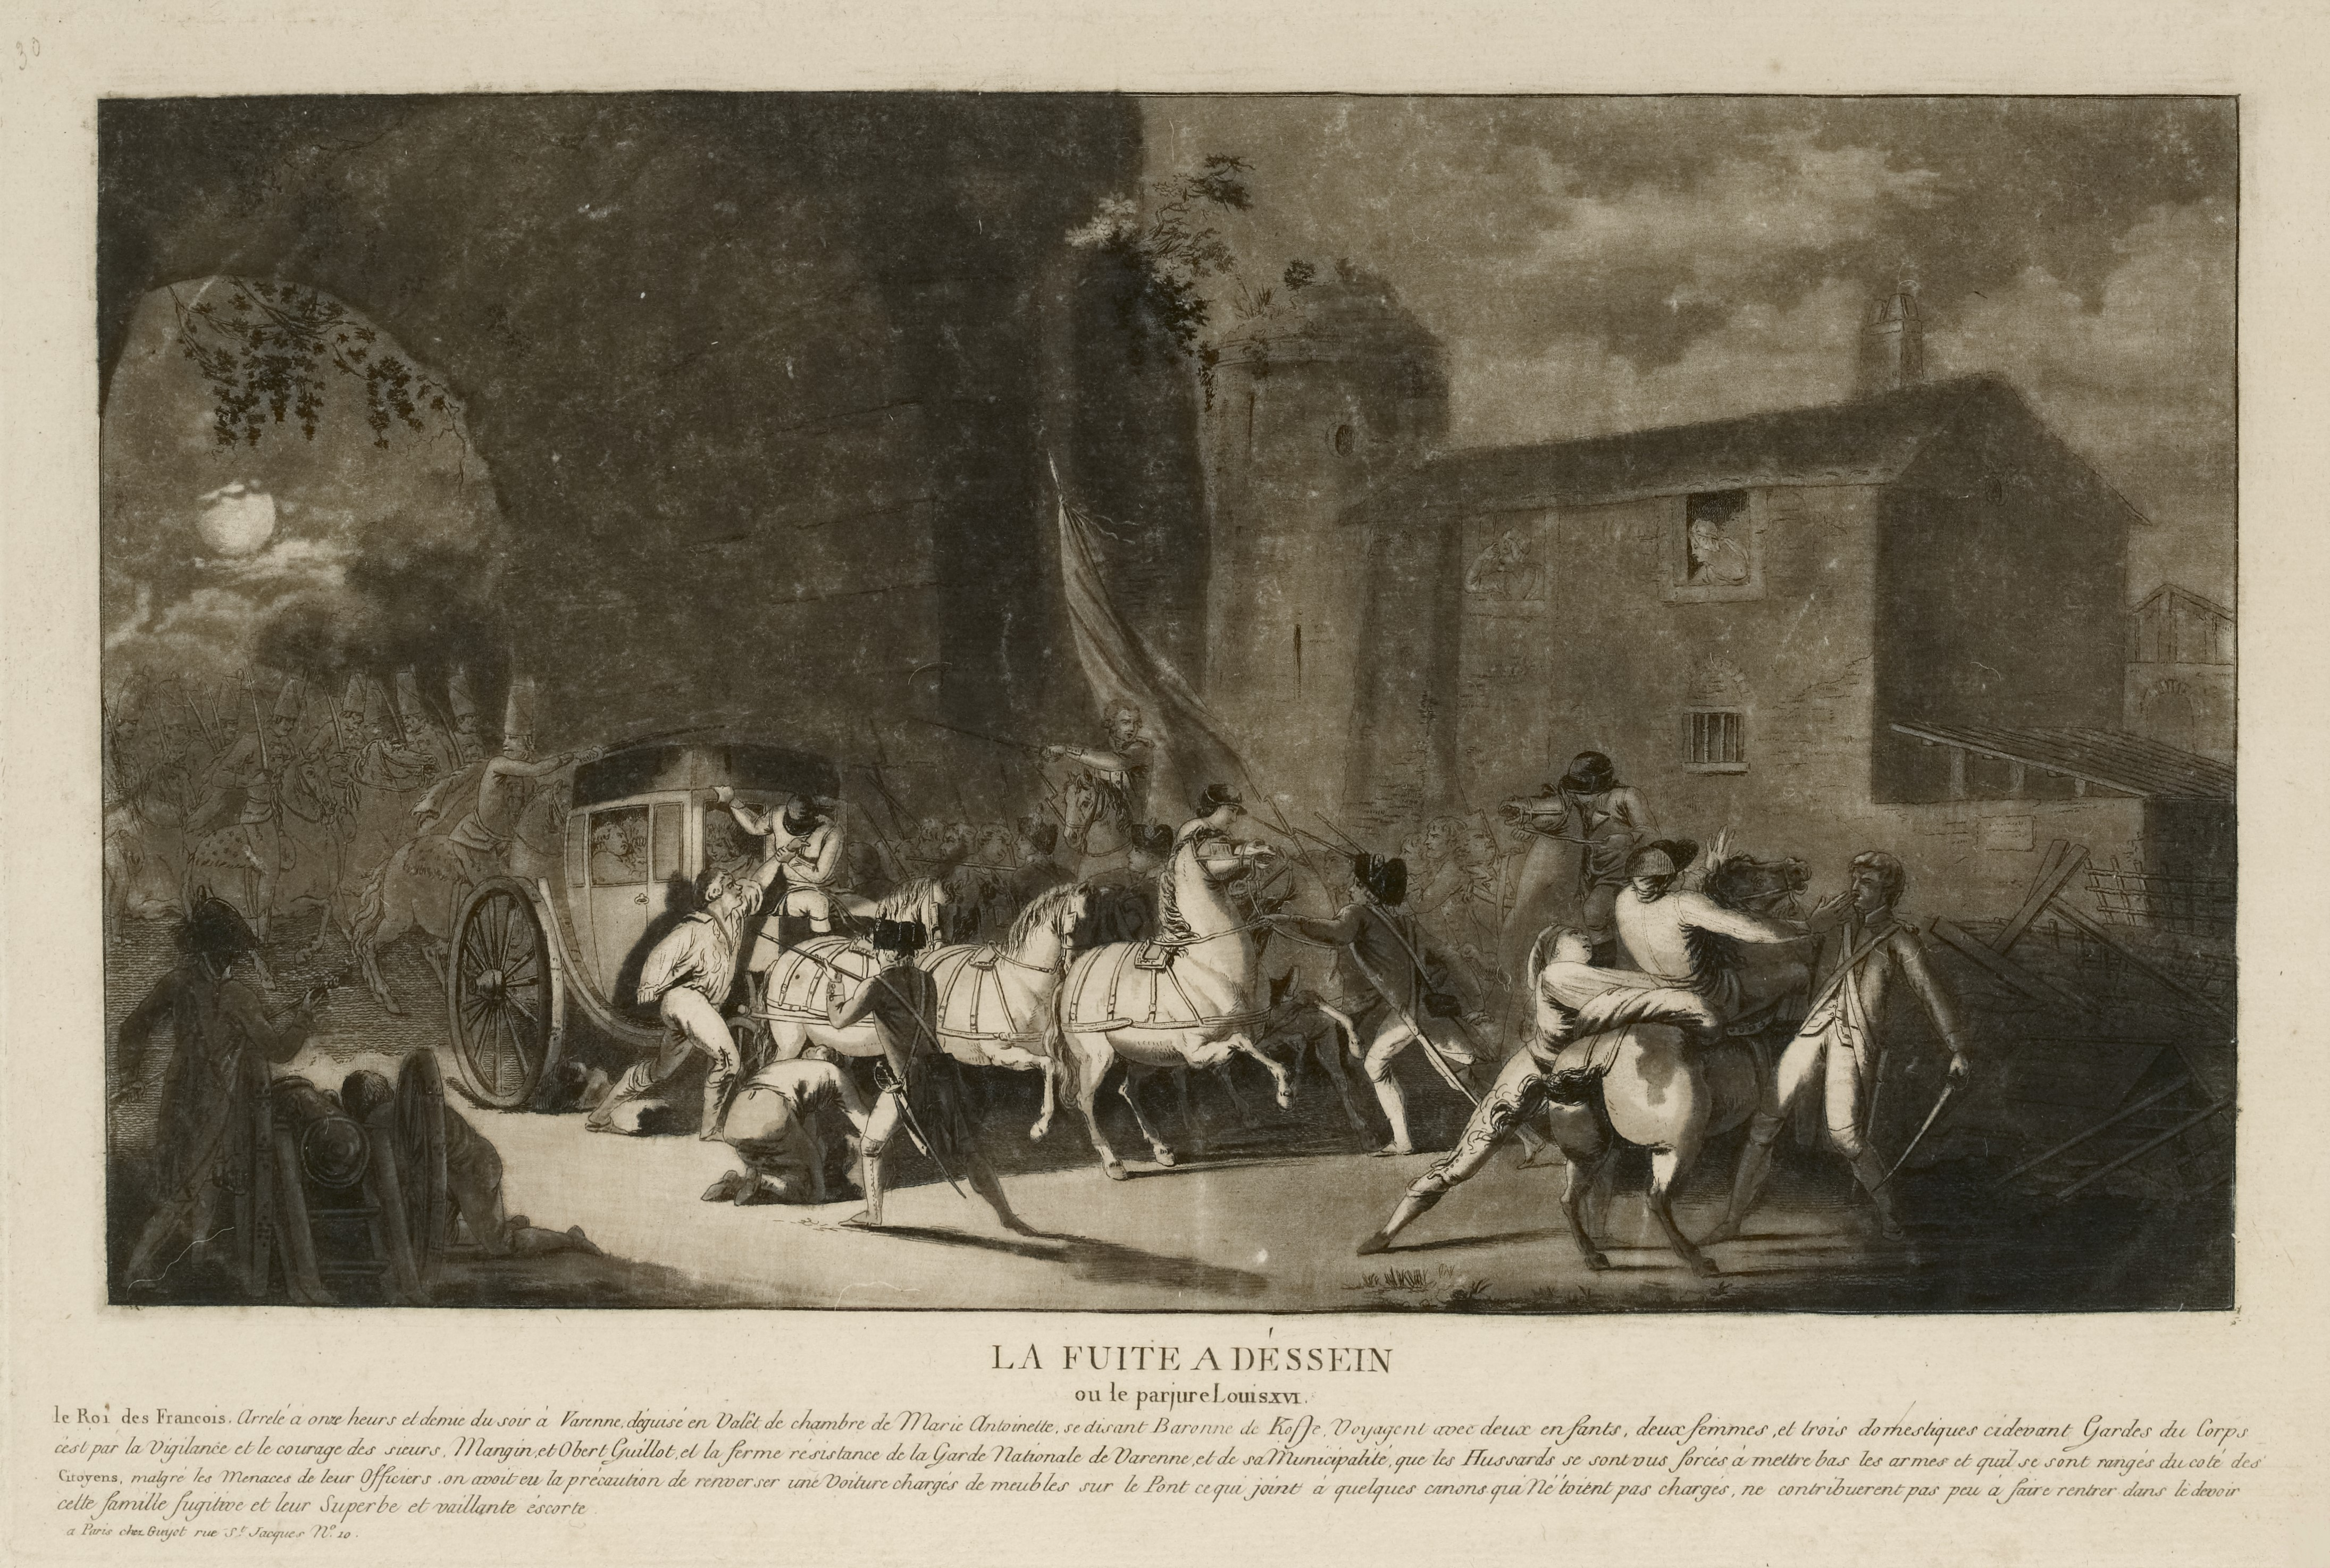 The Flight to Varennes of King Louis XVI of France